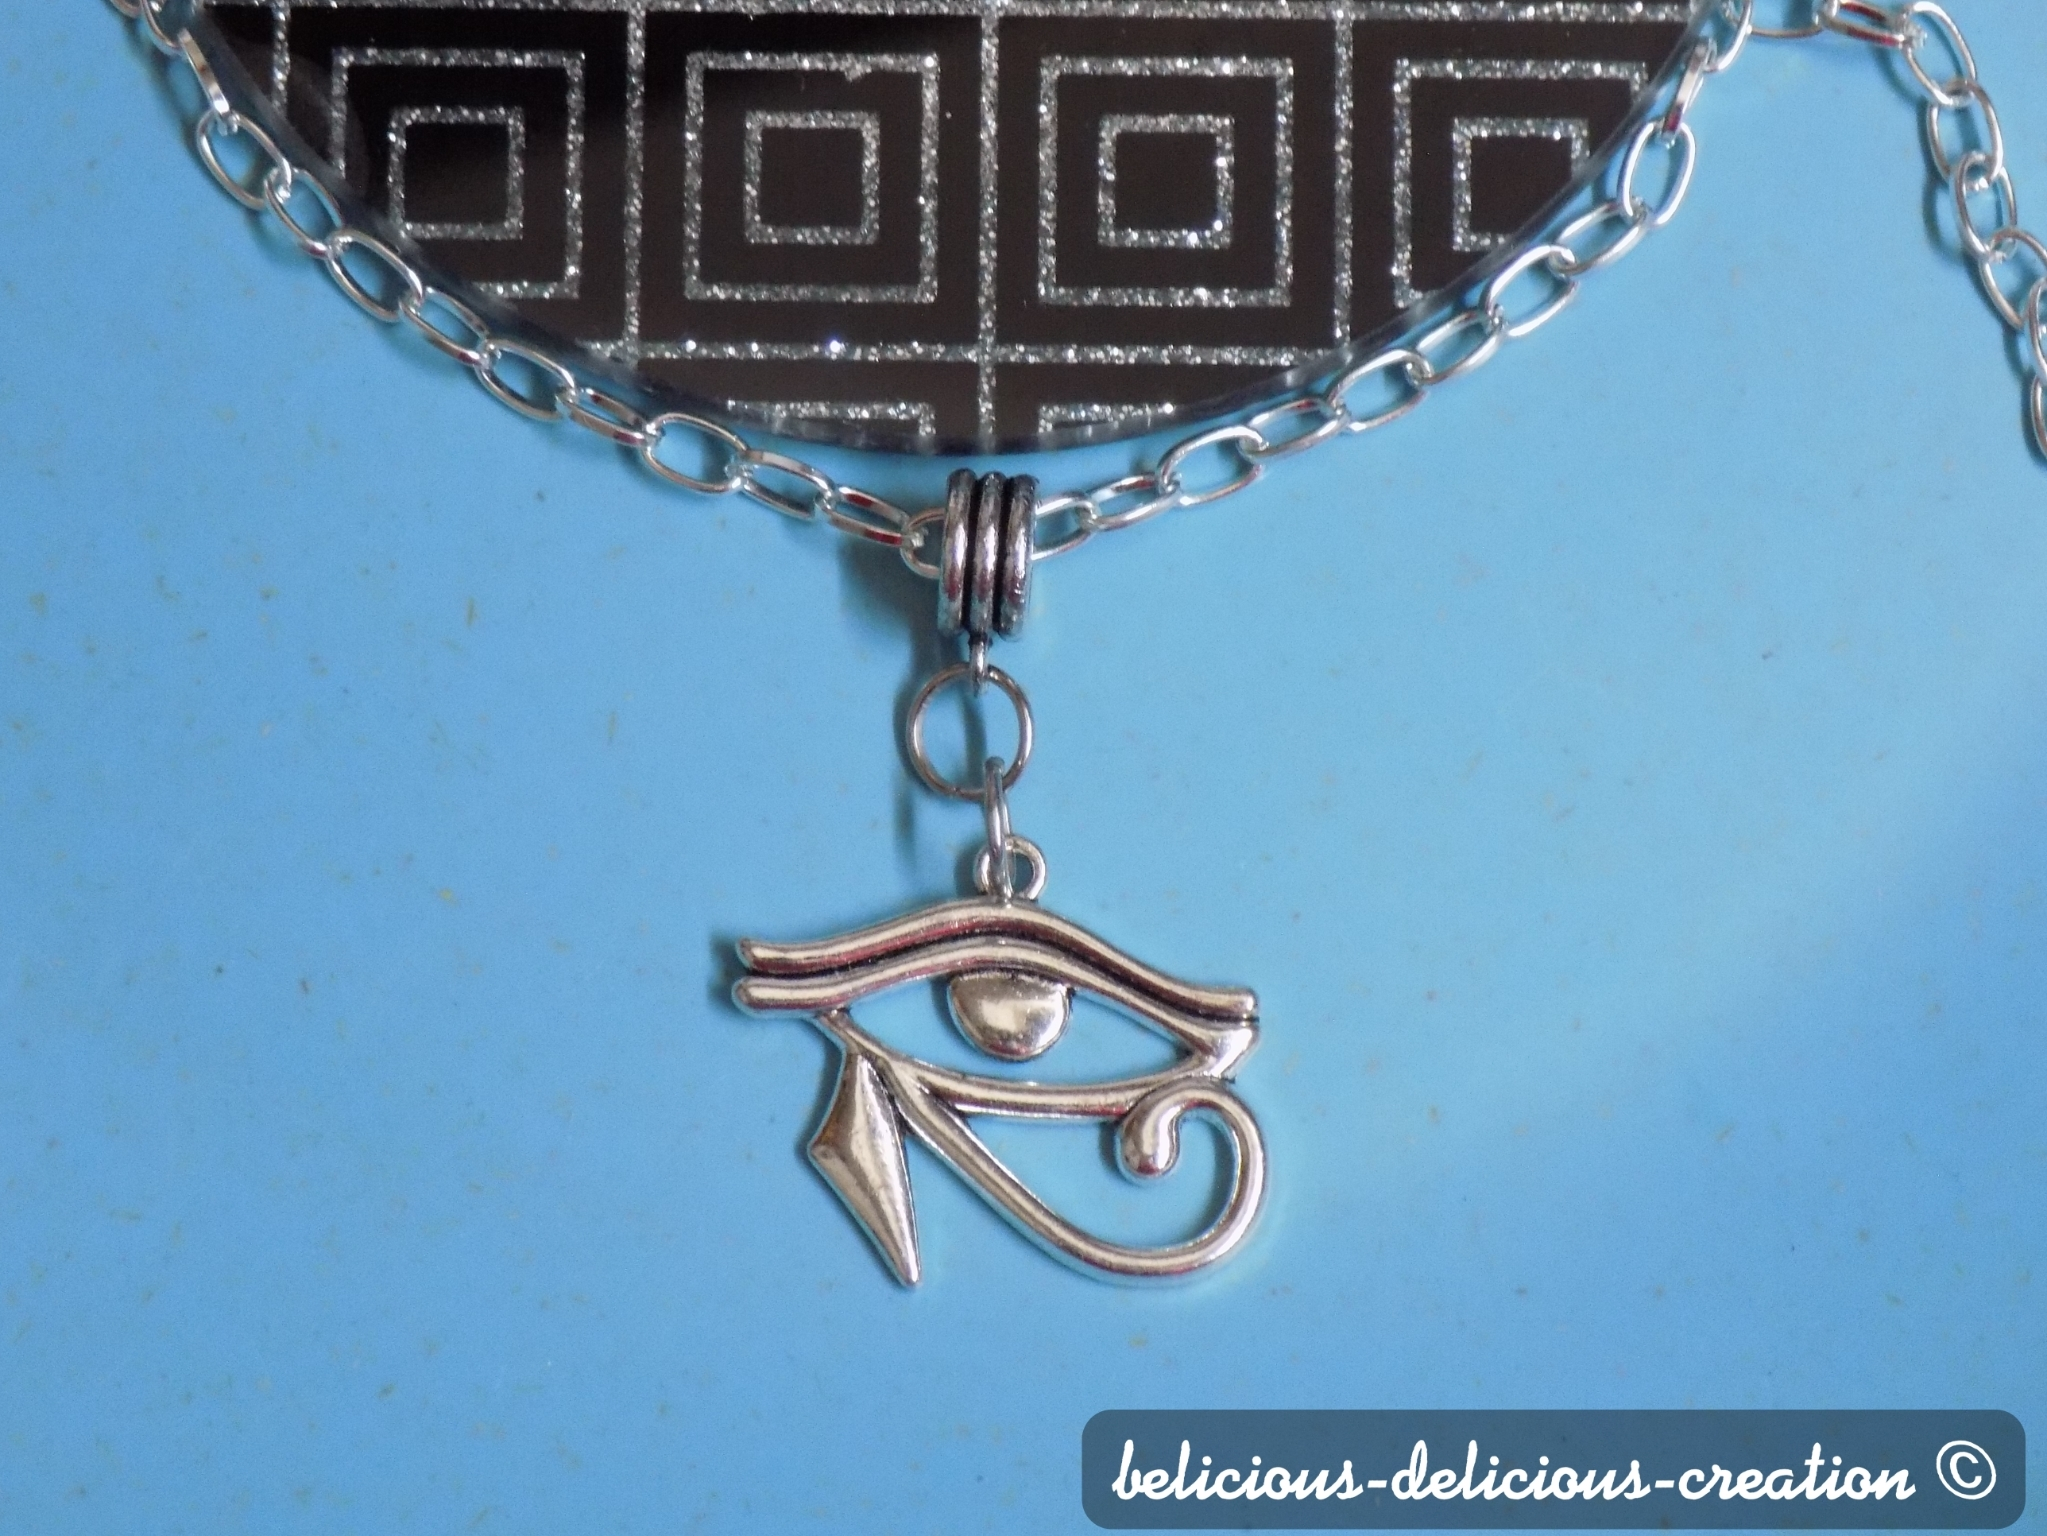 Original Collier Homme !! EYE OF HORUS !! collier en argenté pendentif en metal argente collier long 59cm belicious-delicious-